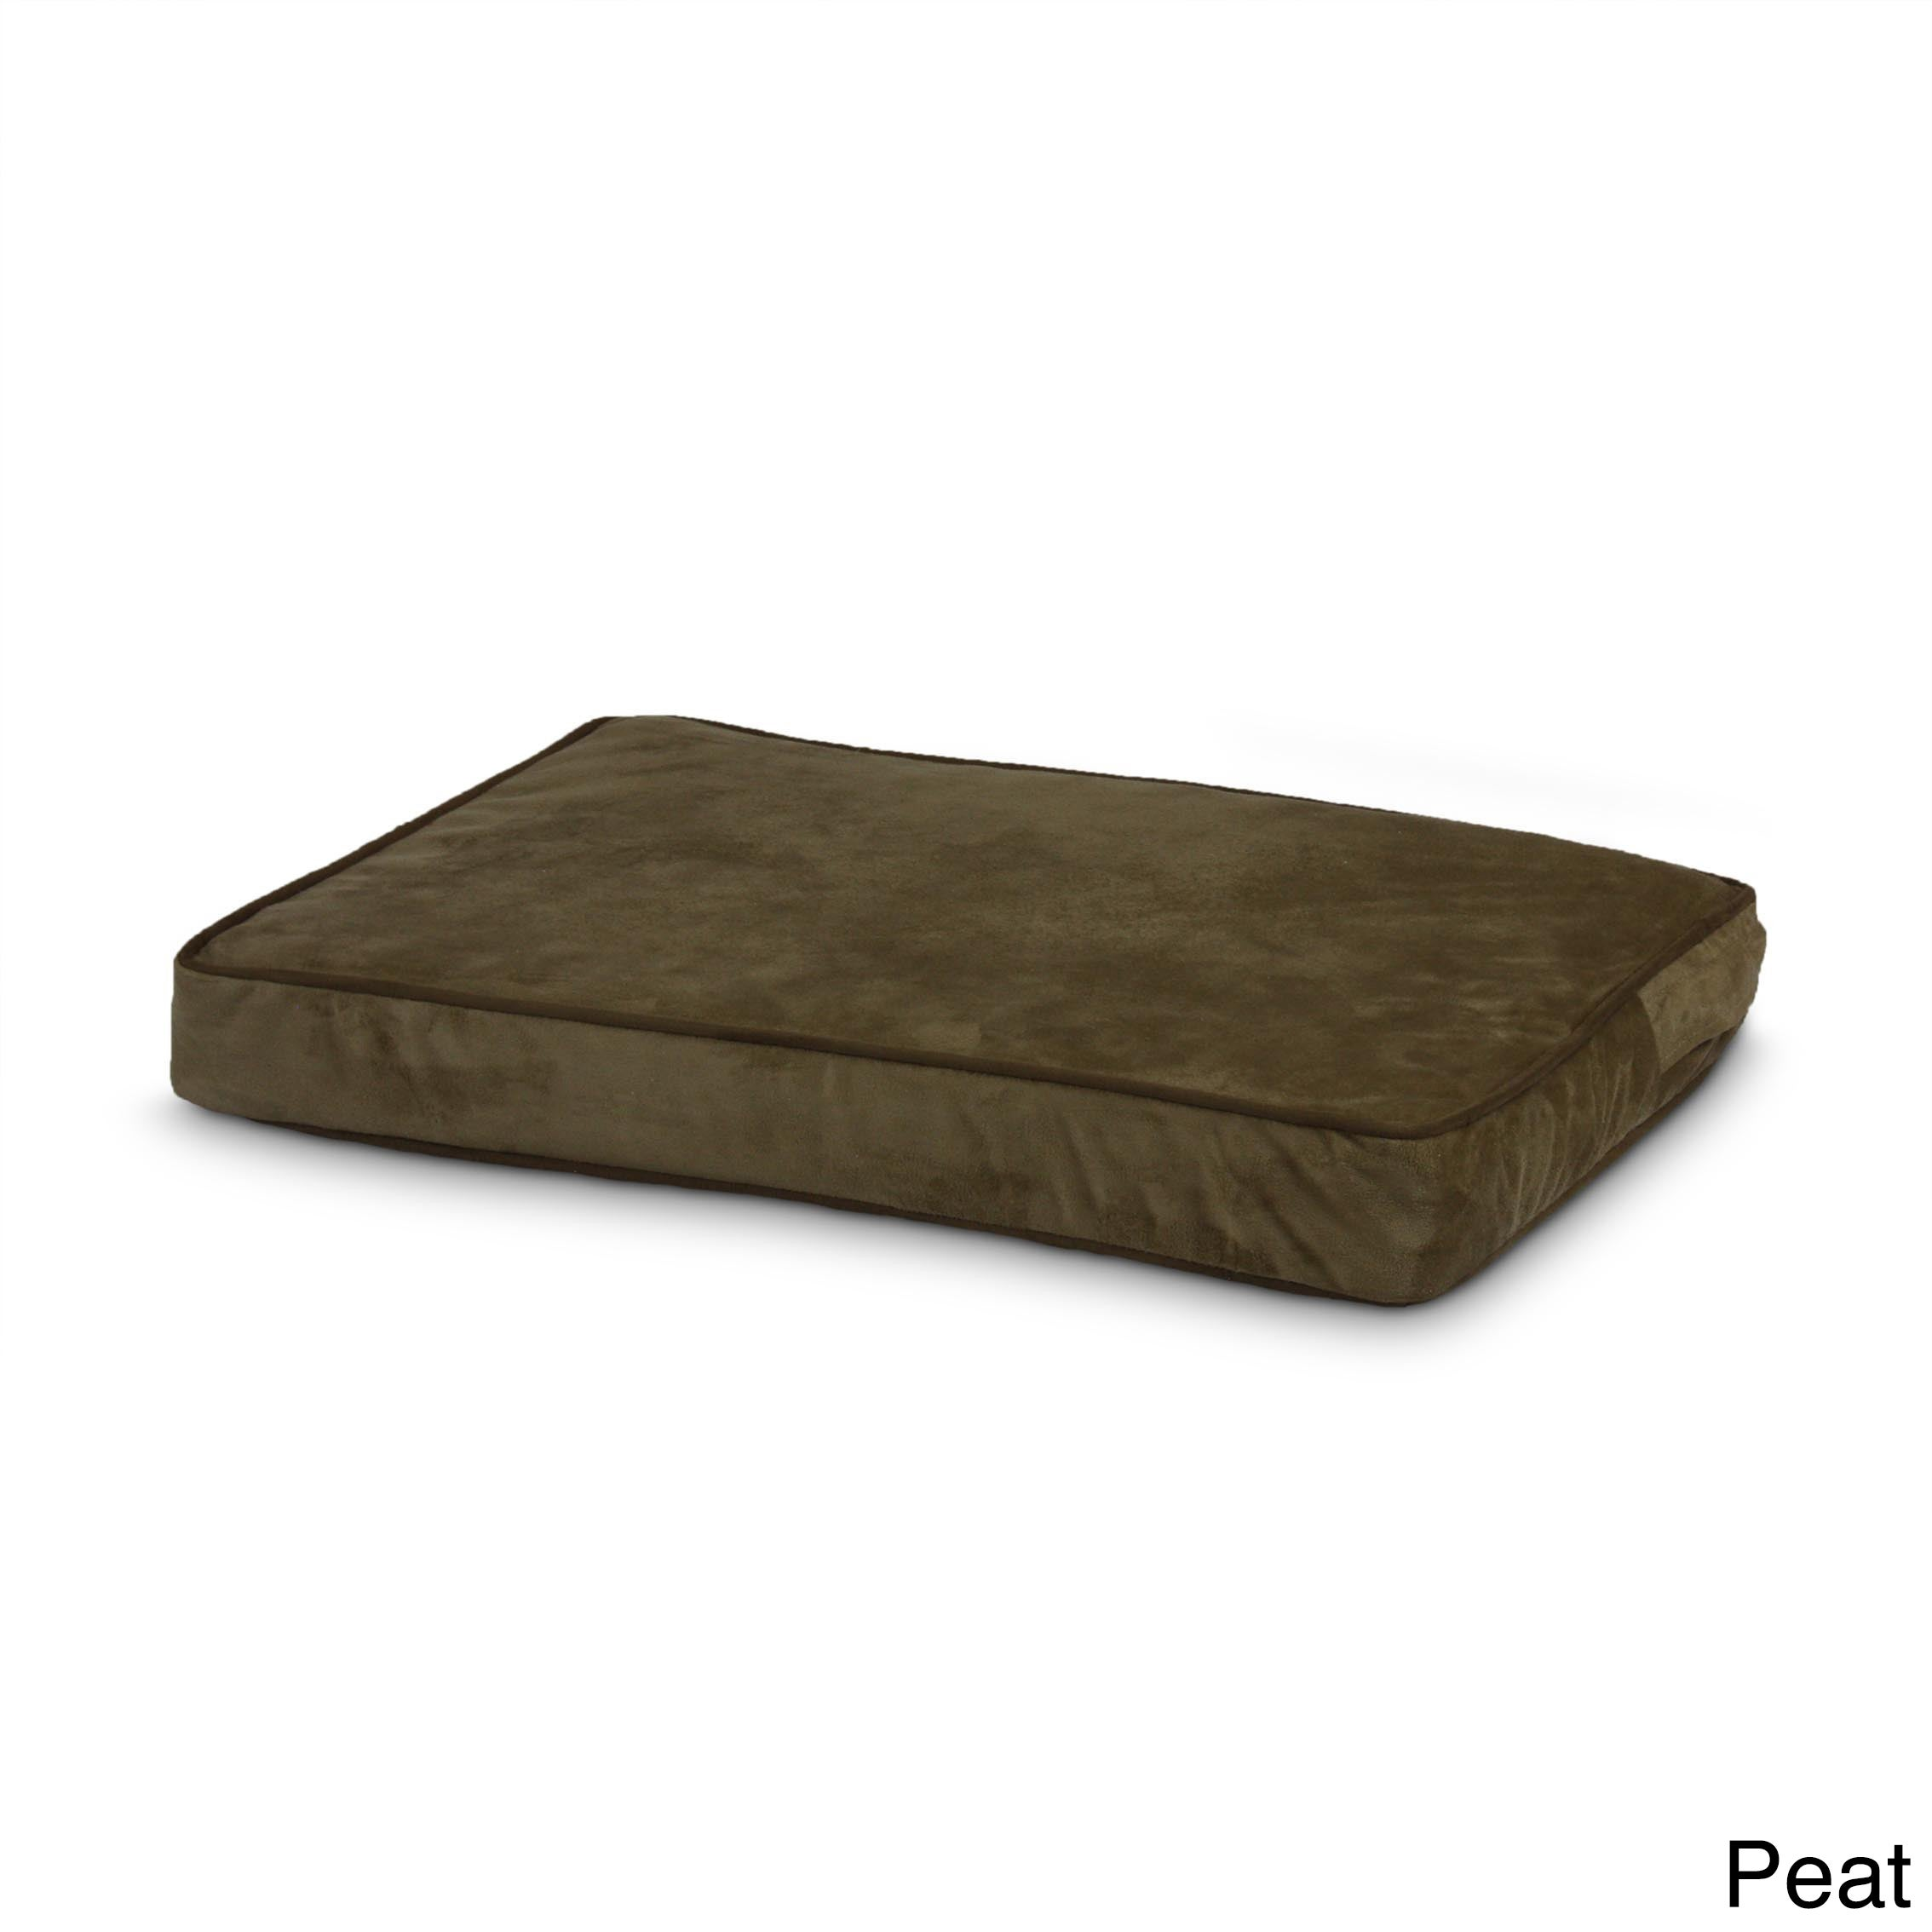 Snoozer Outlast Sleep System Dog Bed (Small Peat), Grey